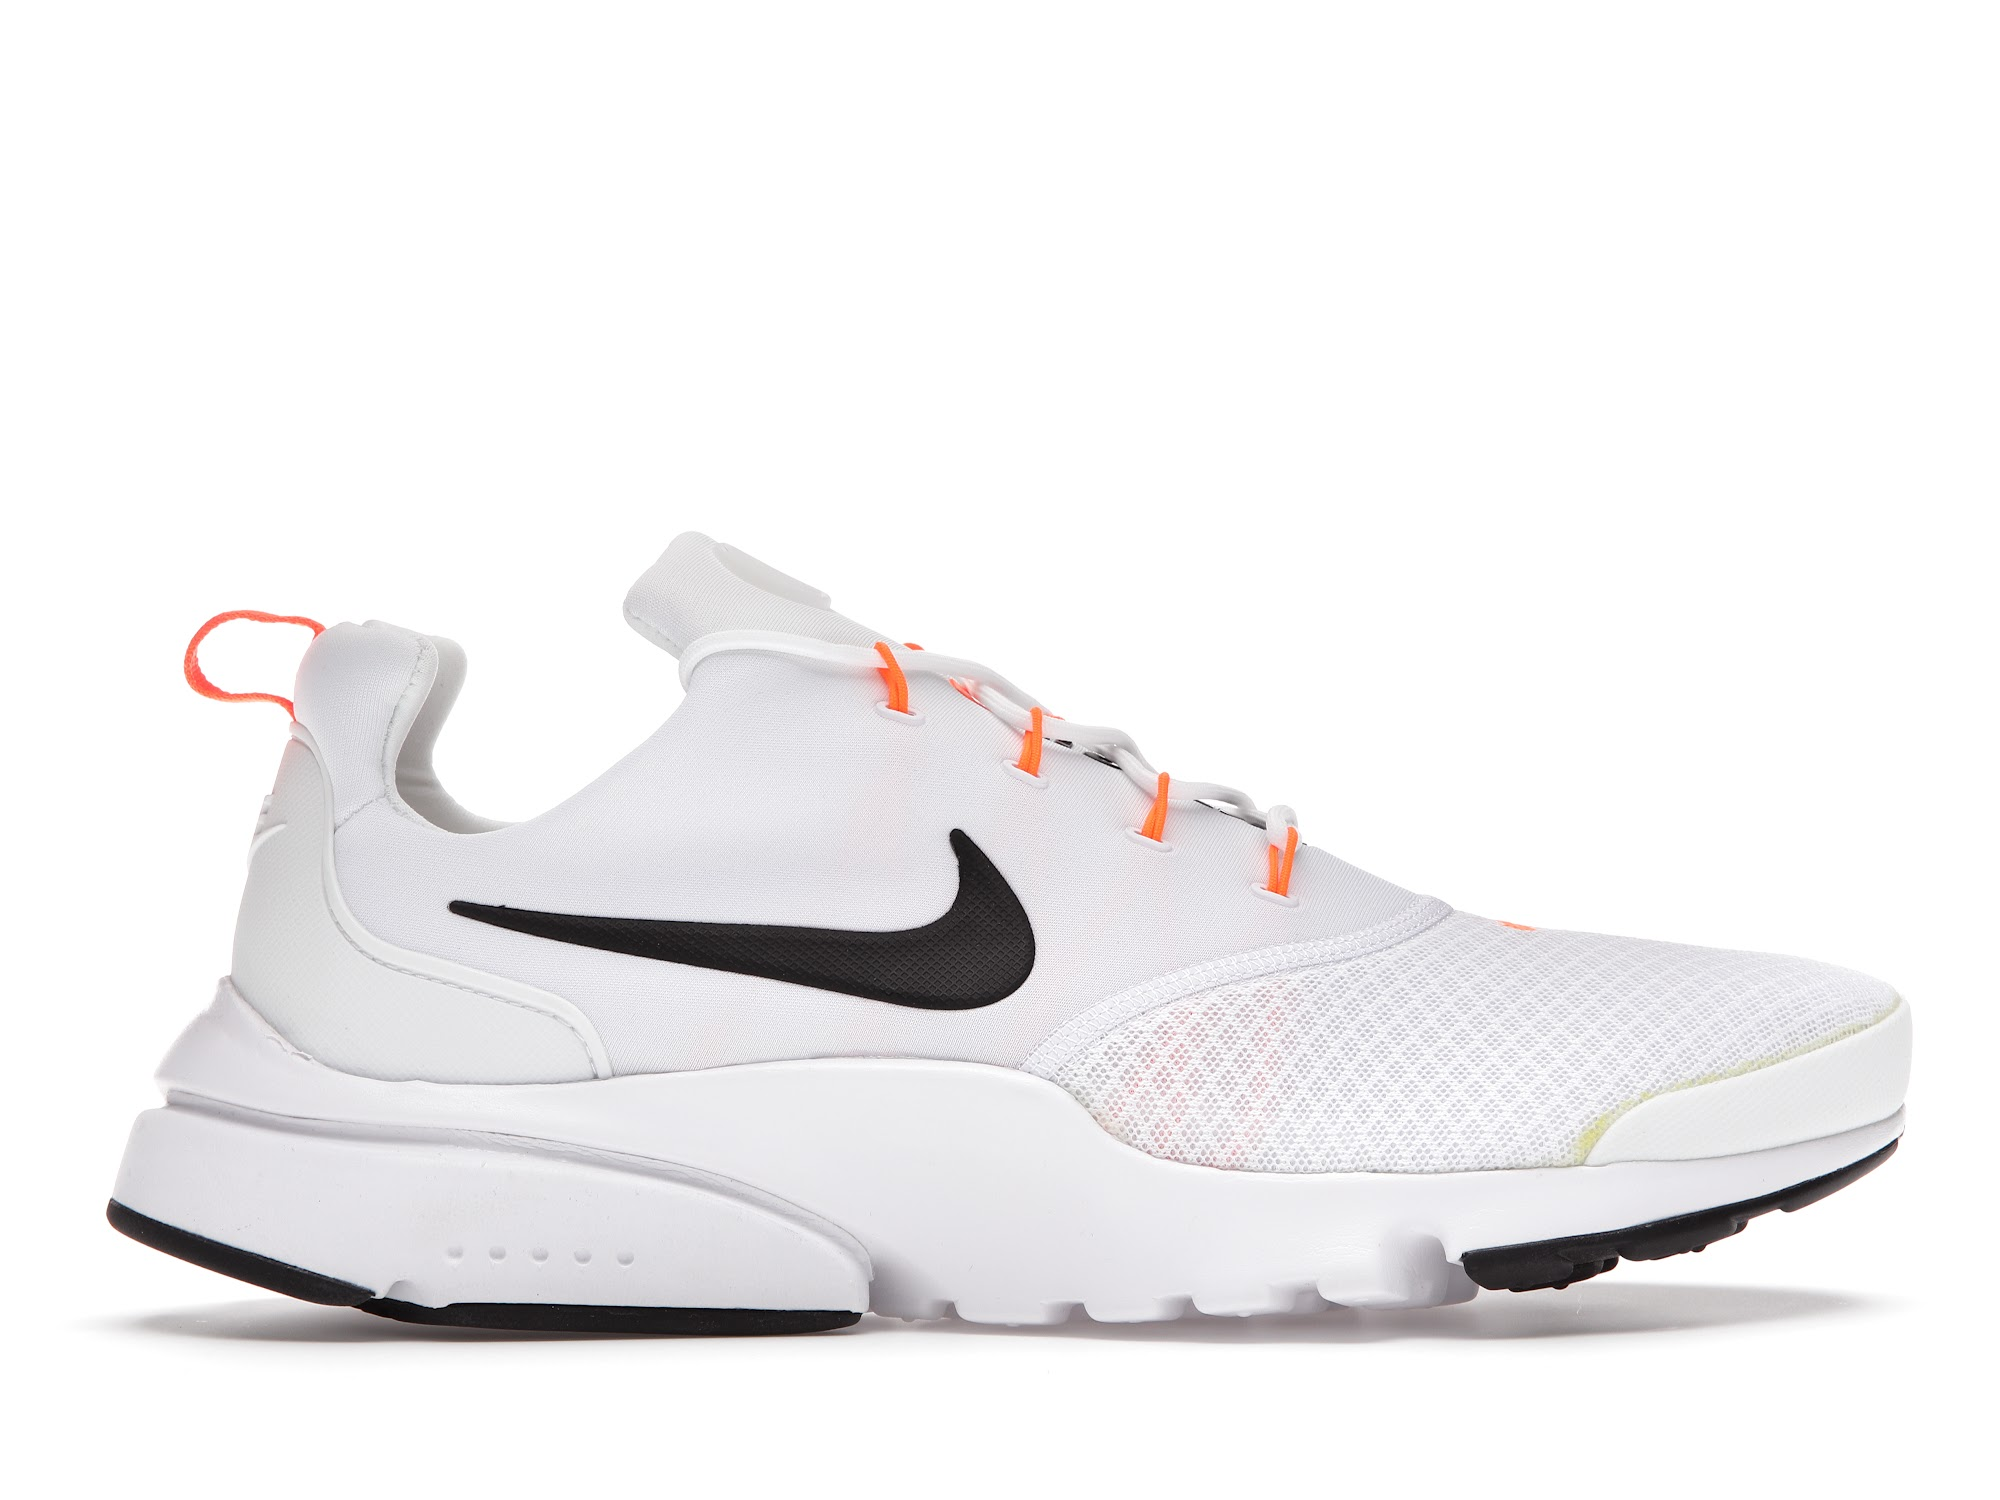 Nike Presto Fly Just Do It Pack White - AQ9688-100